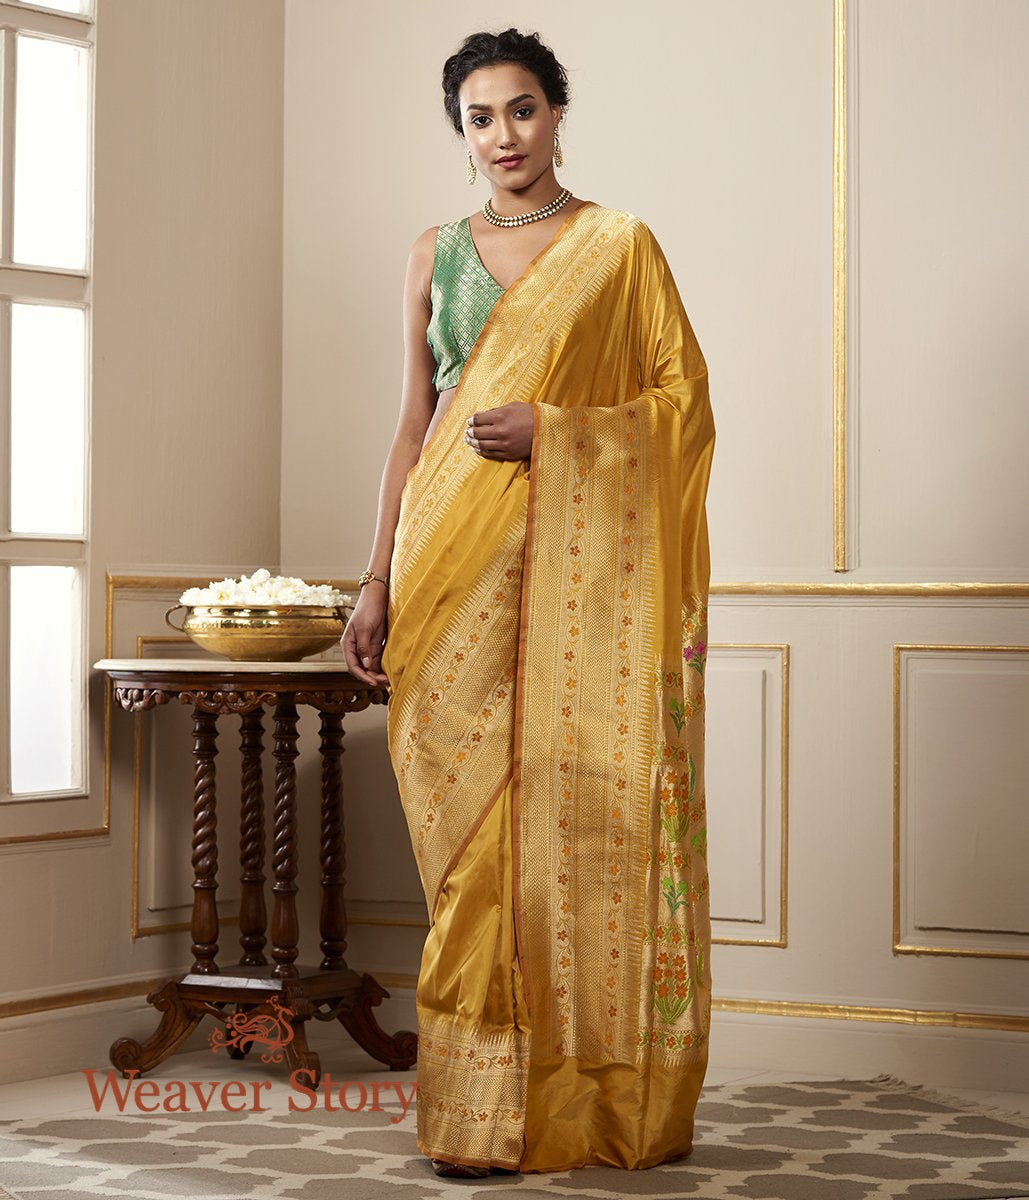 Handwoven Yellow Katan Silk Saree with Floral Meenakari Border and Pallu